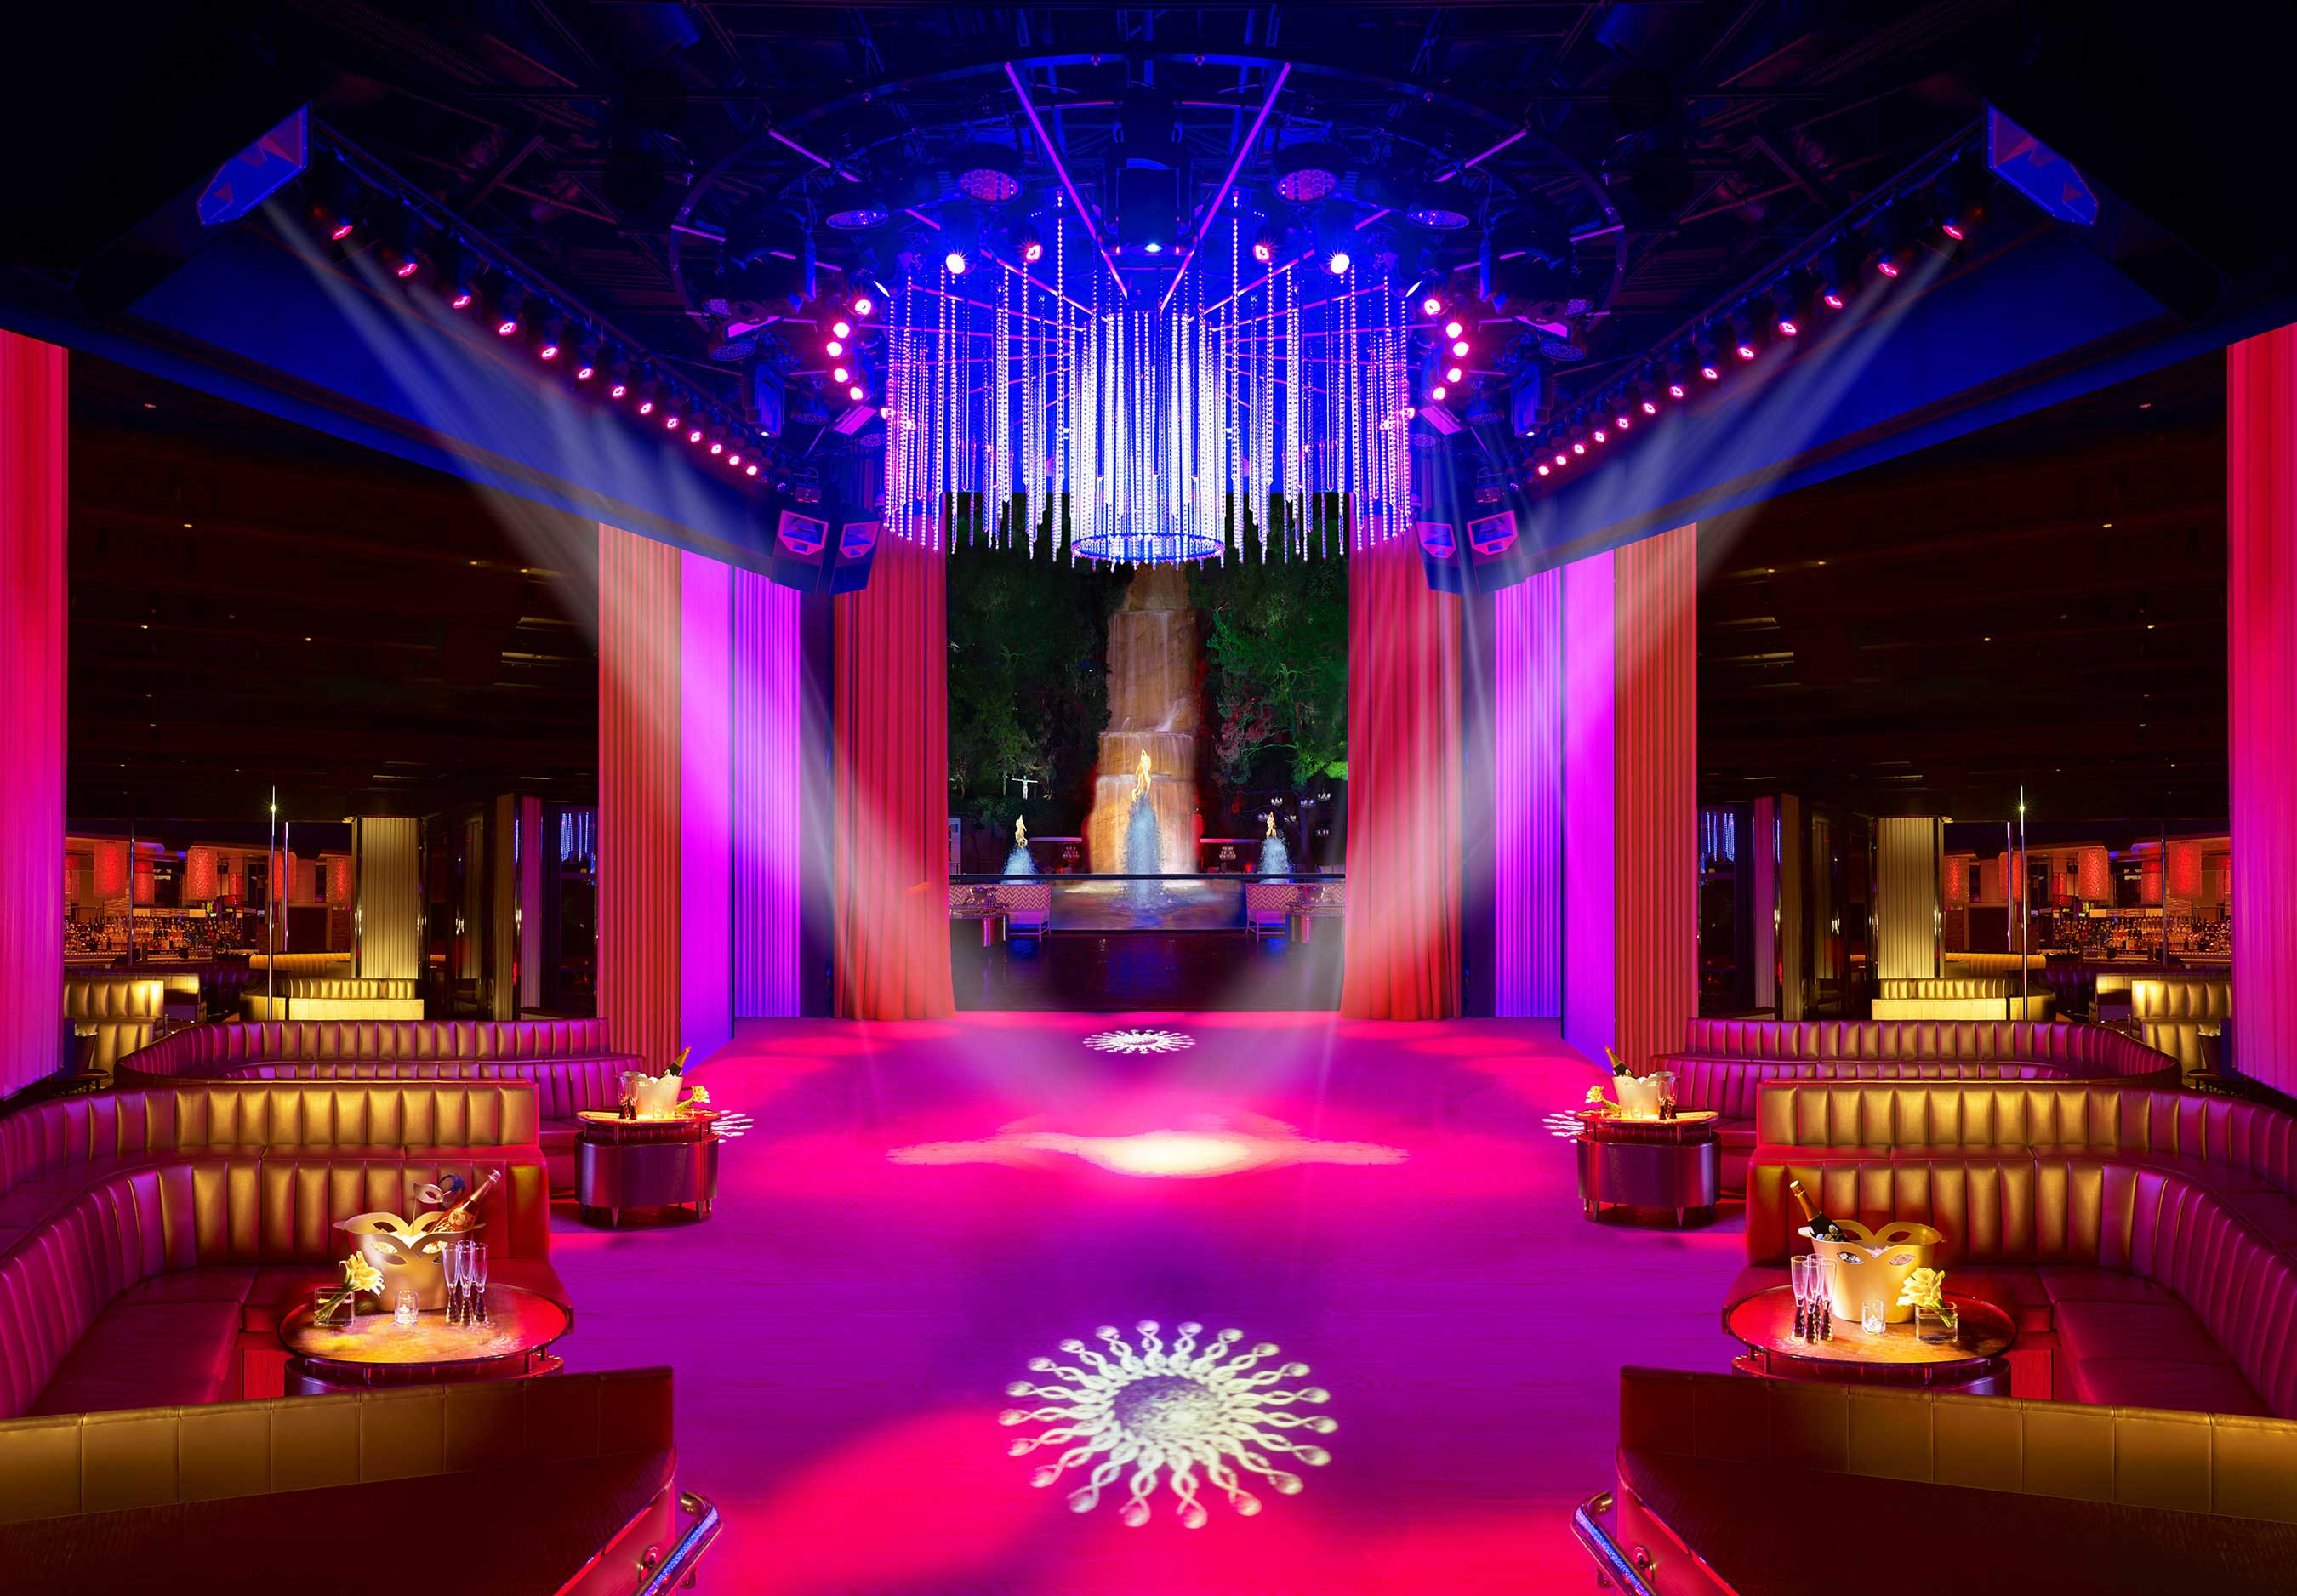 Main room interior at Intrigue Nightclub in Wynn Las Vegas (photo credit: Barbara Kraft)